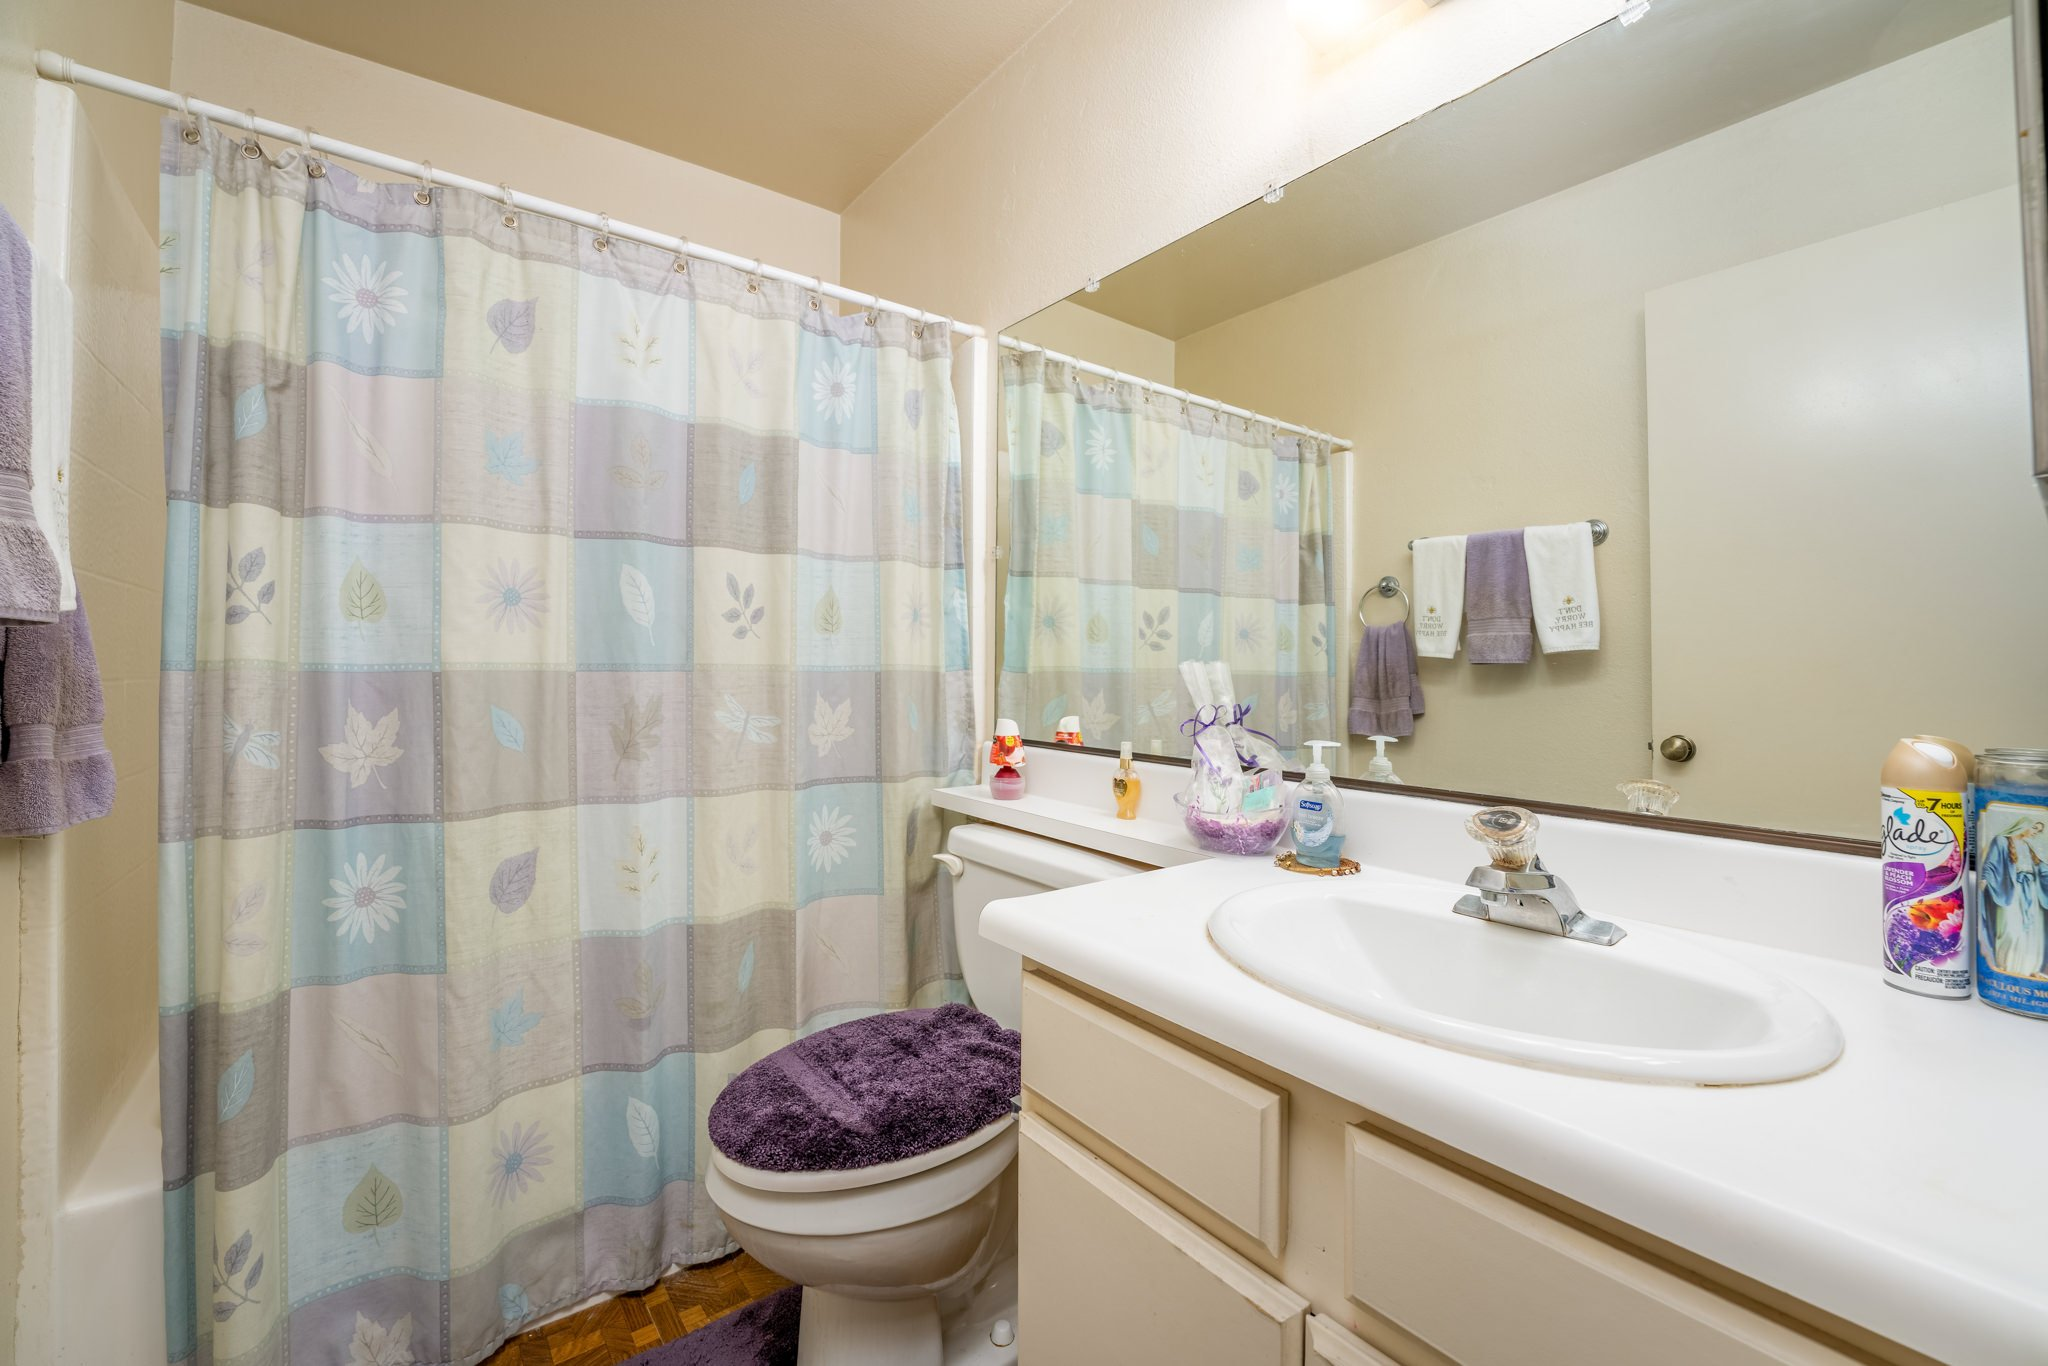 509 Hilltop Terrace Palmdale Real Estate Bathroom One